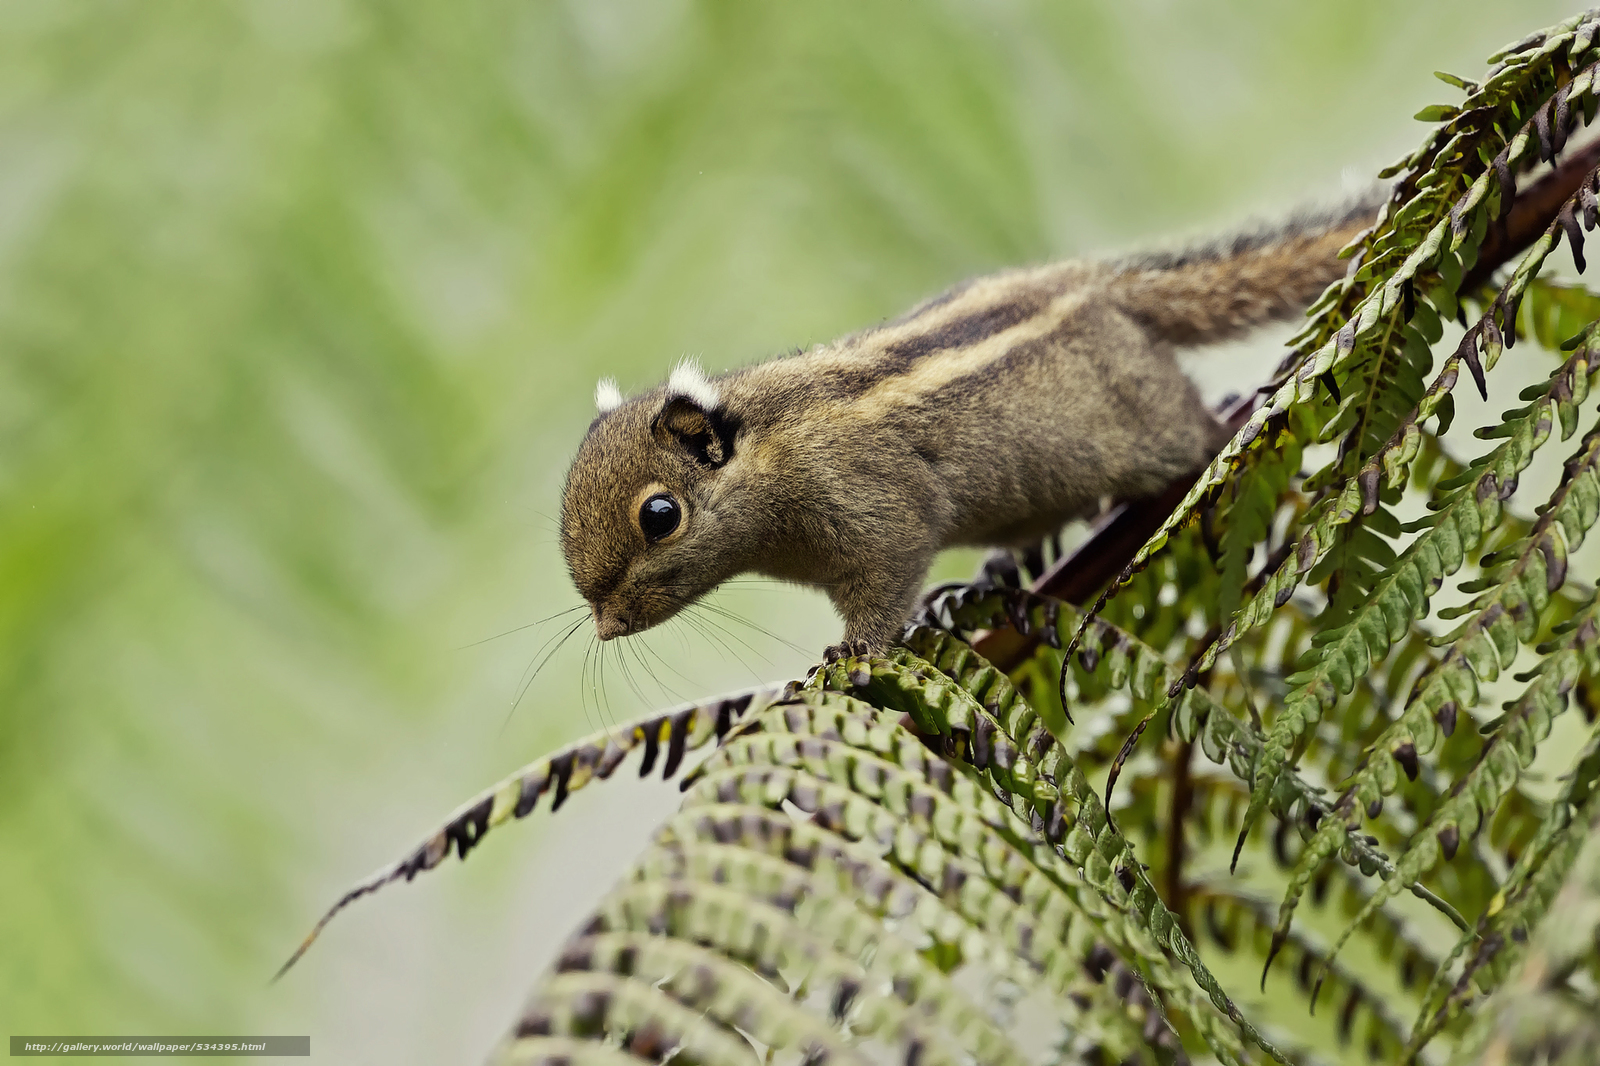 Download wallpaper background, Himalayan striped squirrel ...